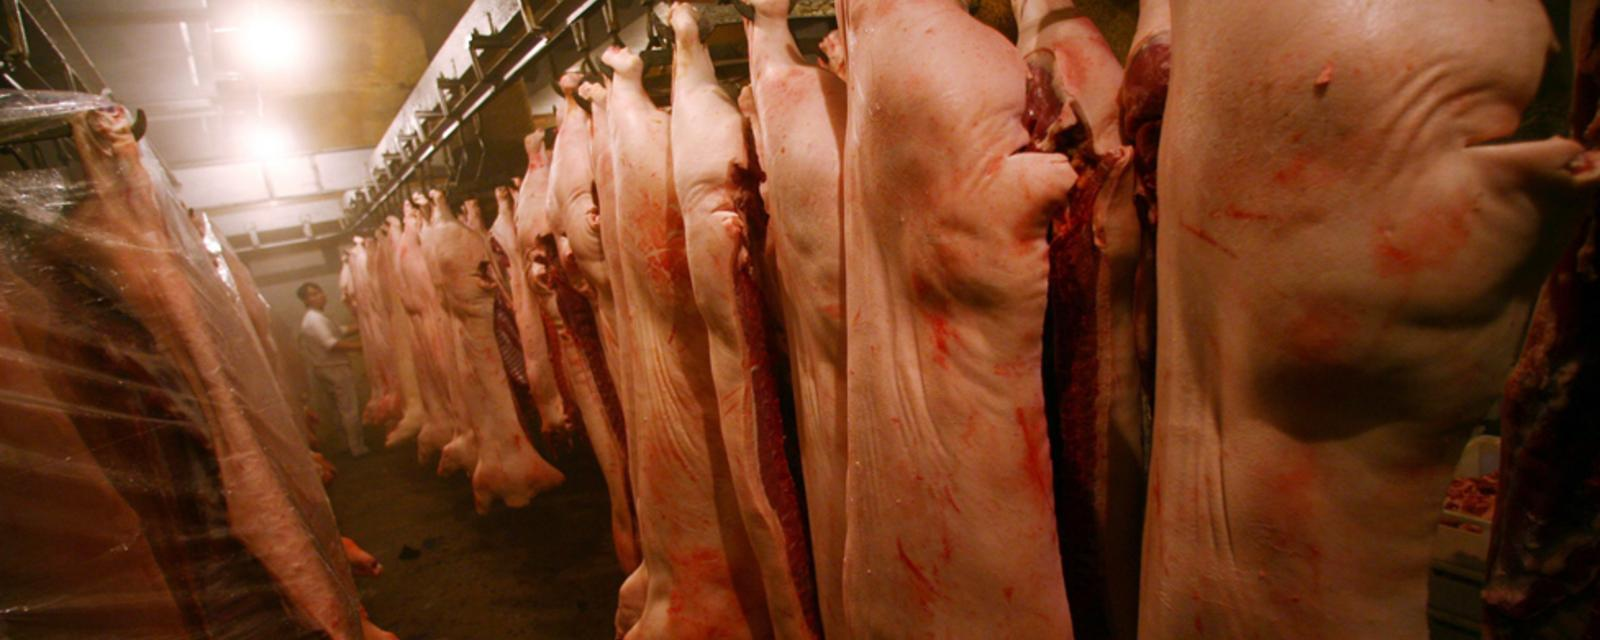 News 2050: All meat sales banned